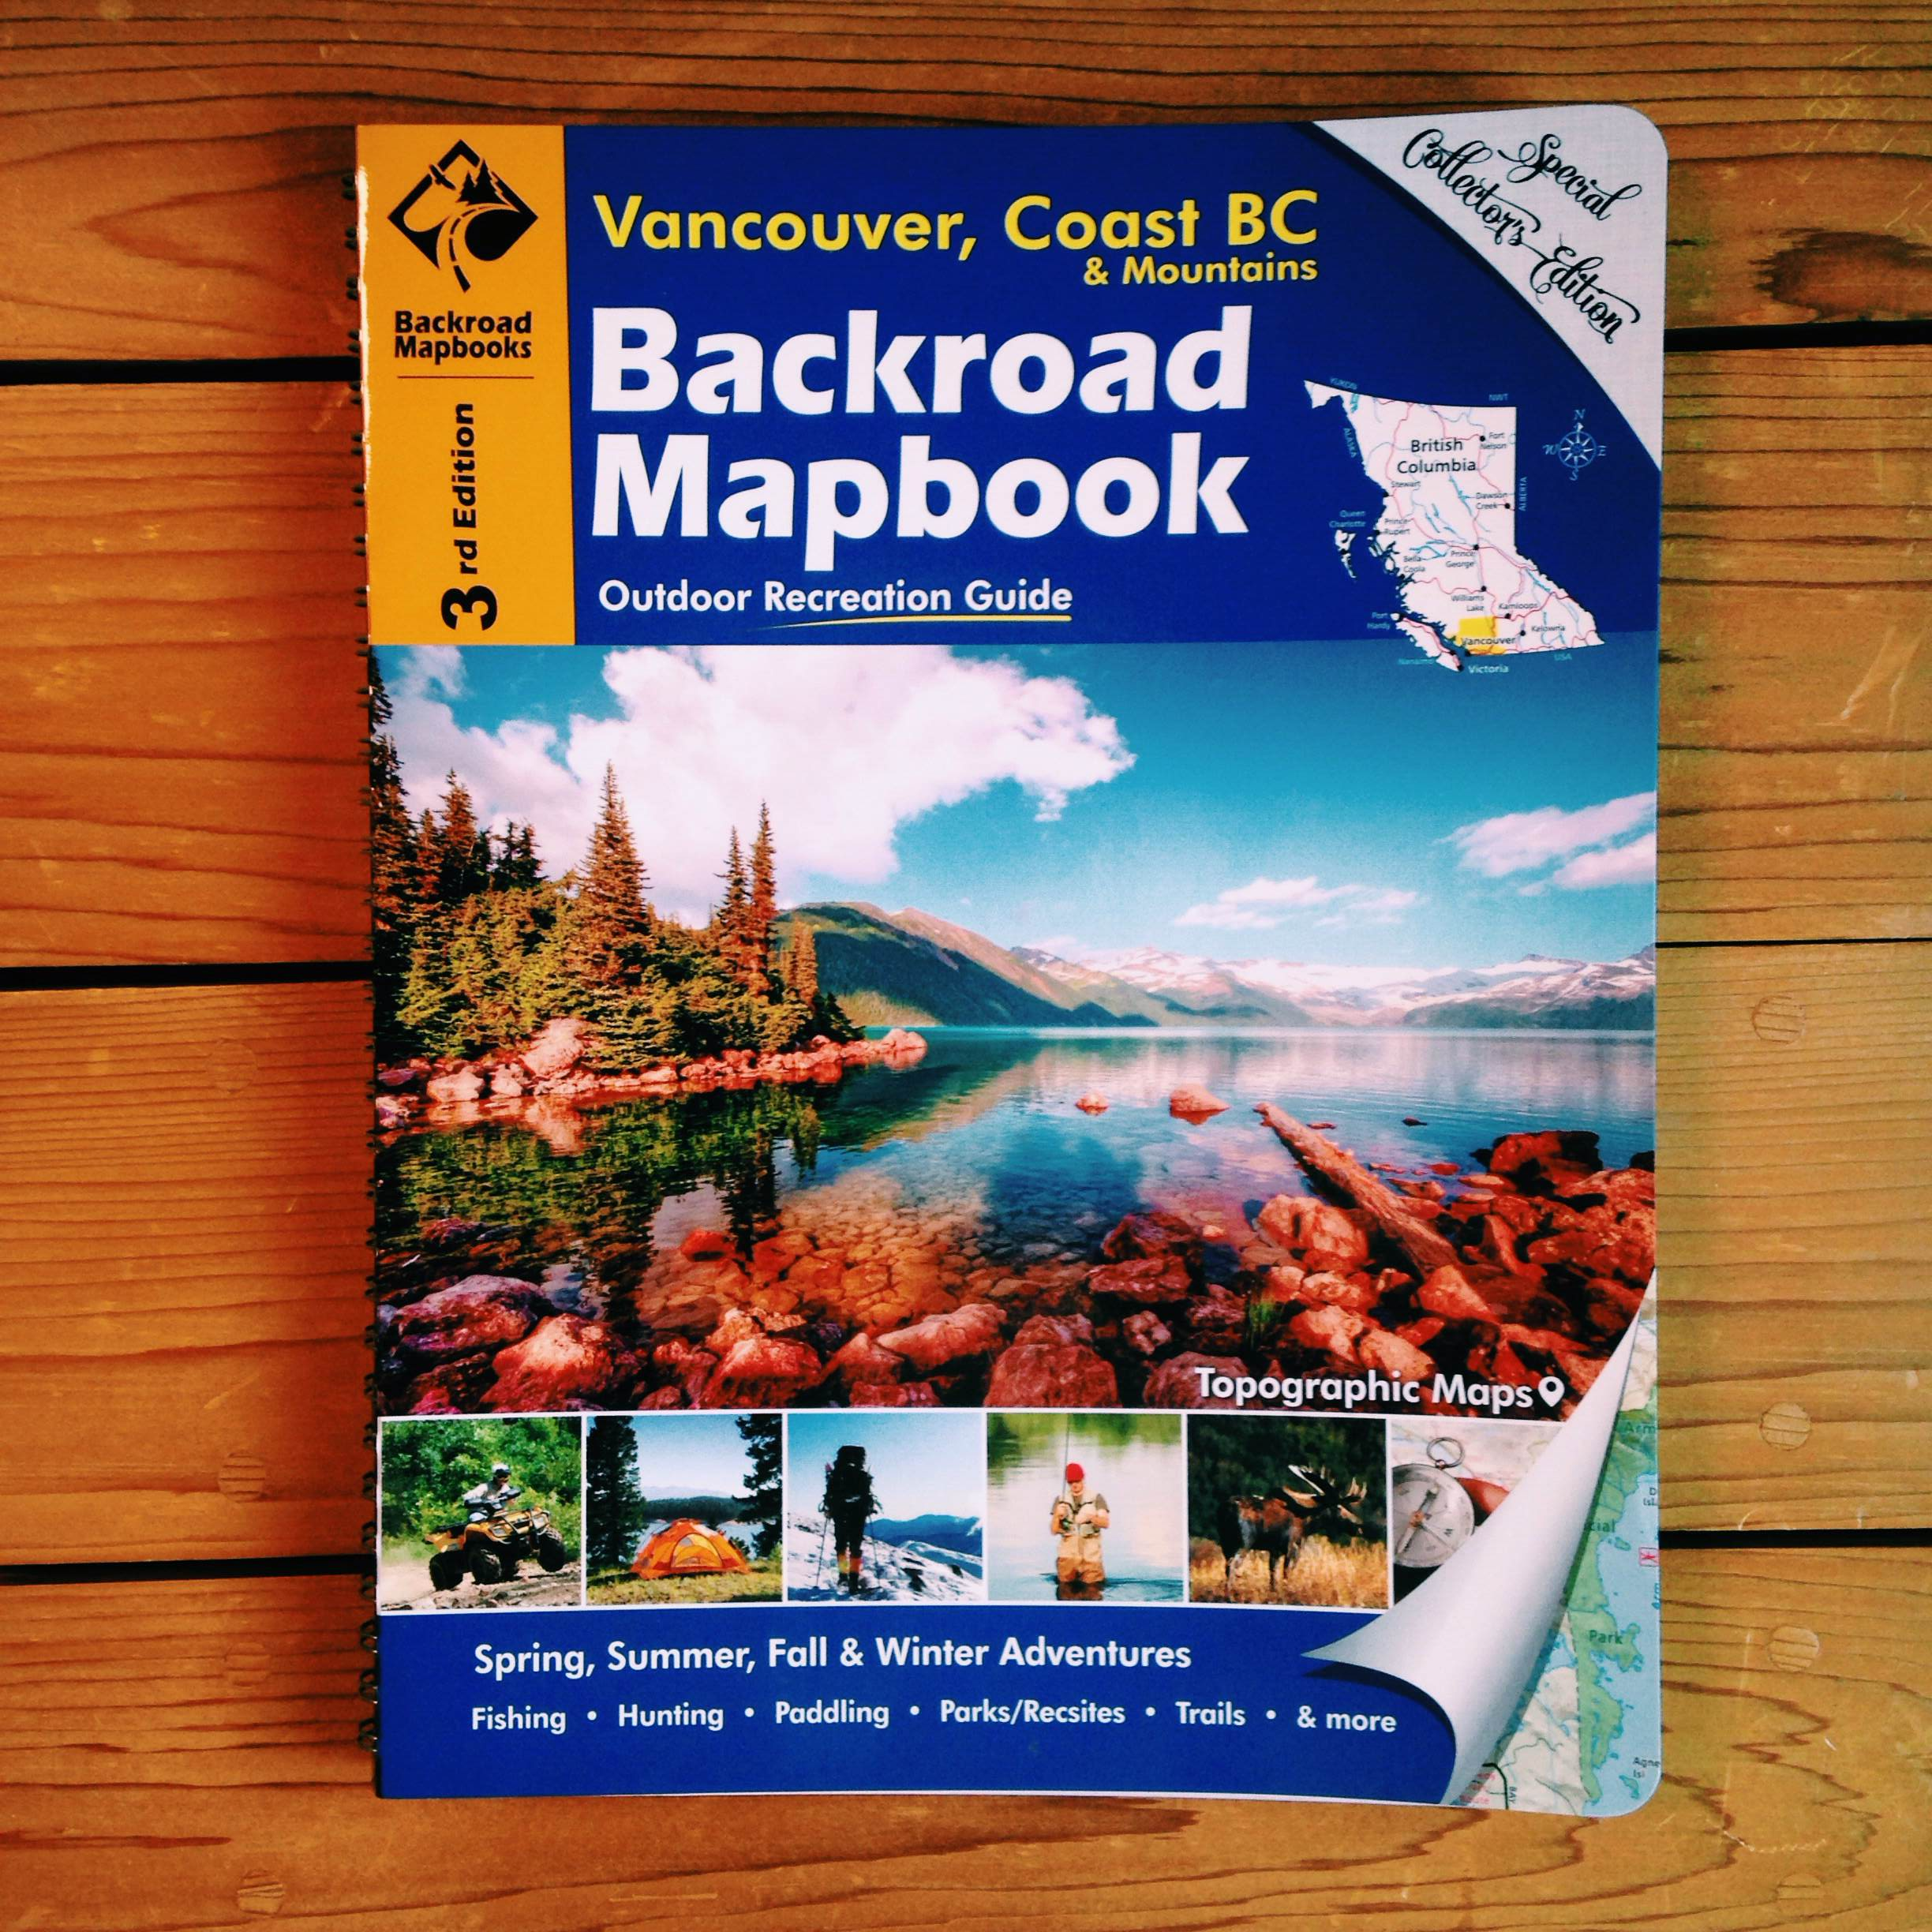 Backgroad Mapbooks